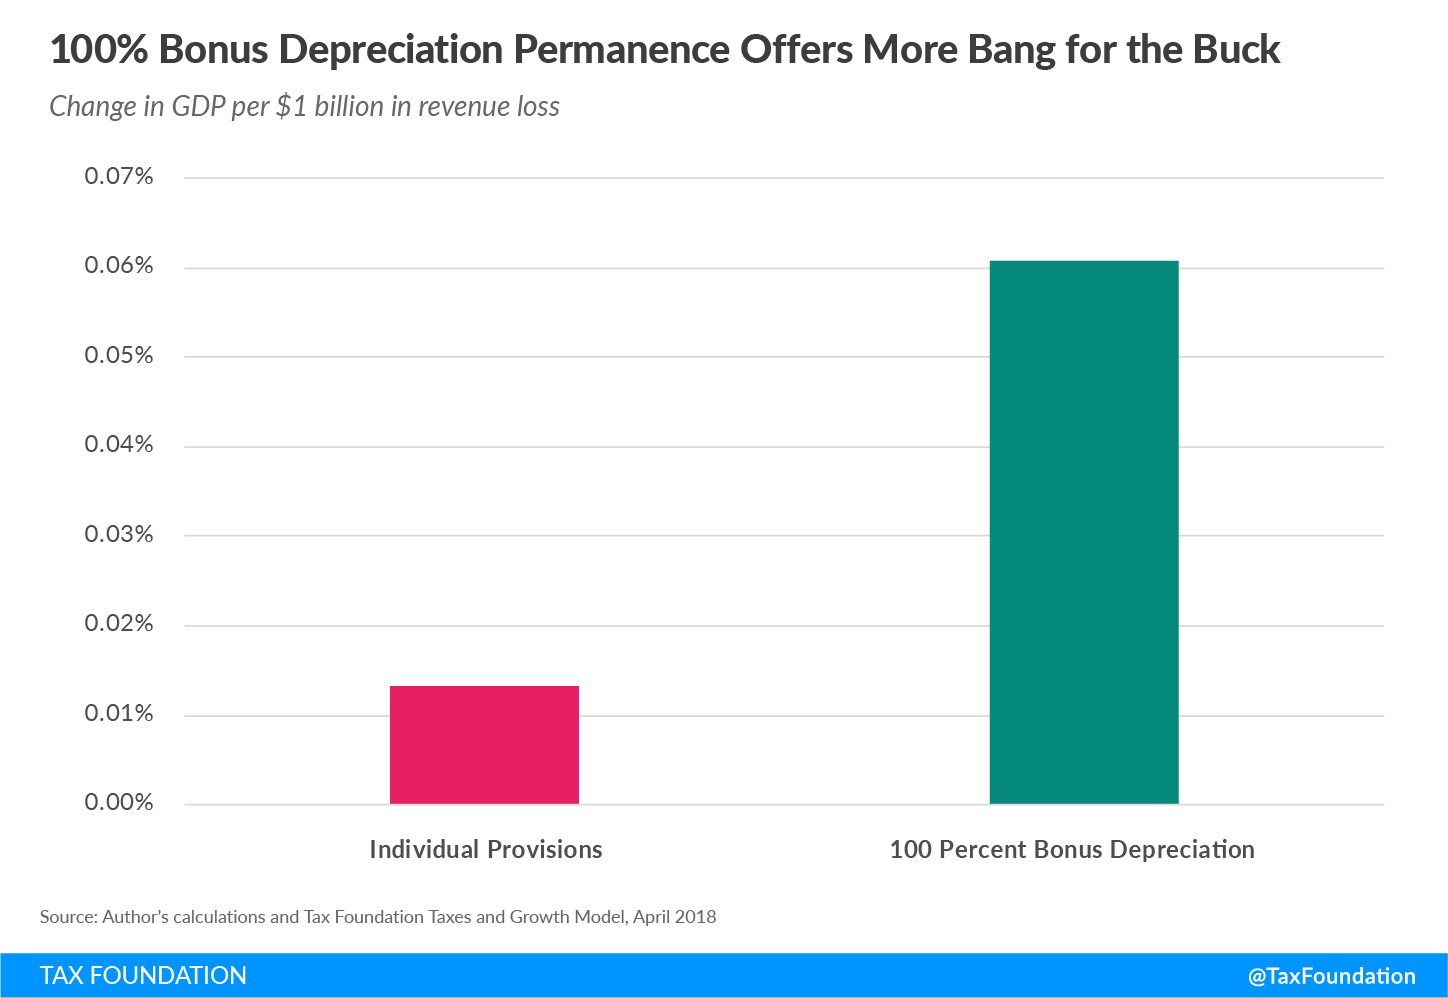 100 percent bonus depreciation permanence offers more bang for the buck